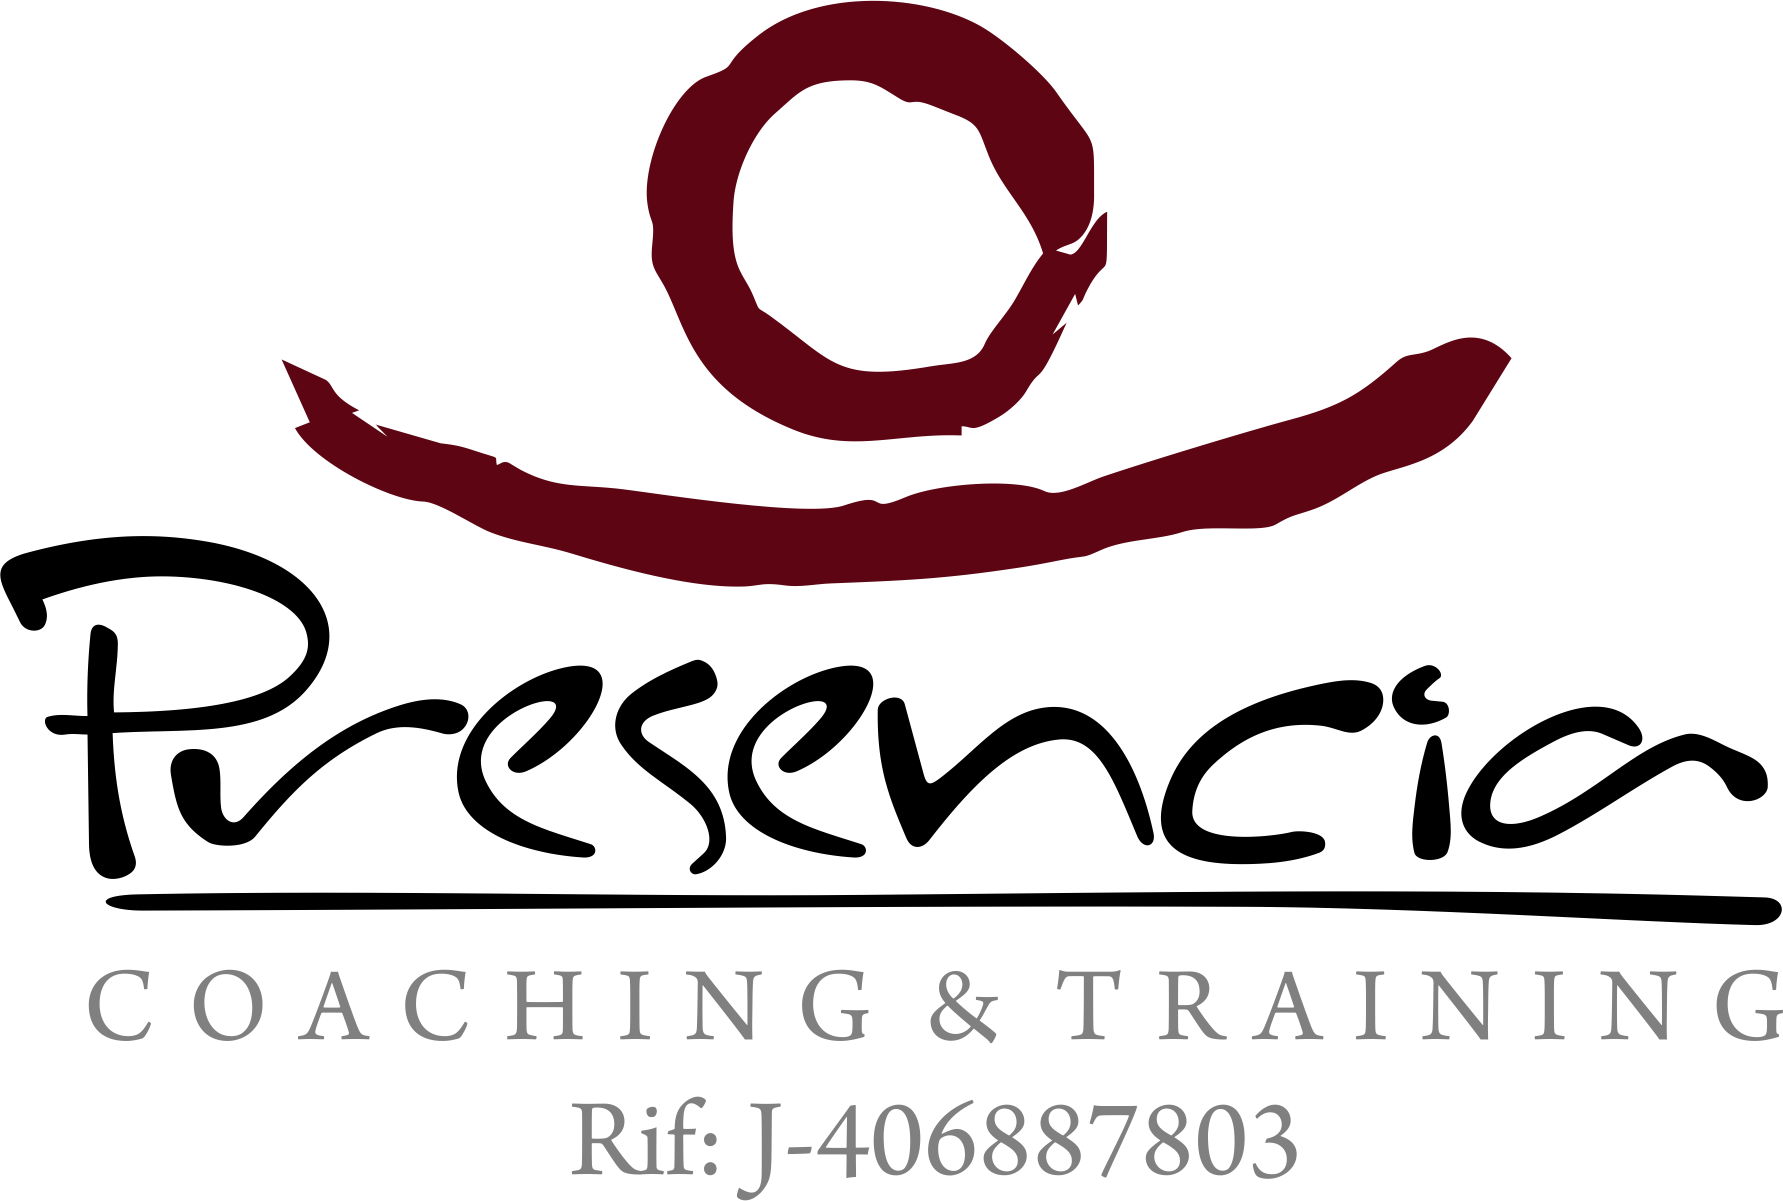 logo presencia coaching training